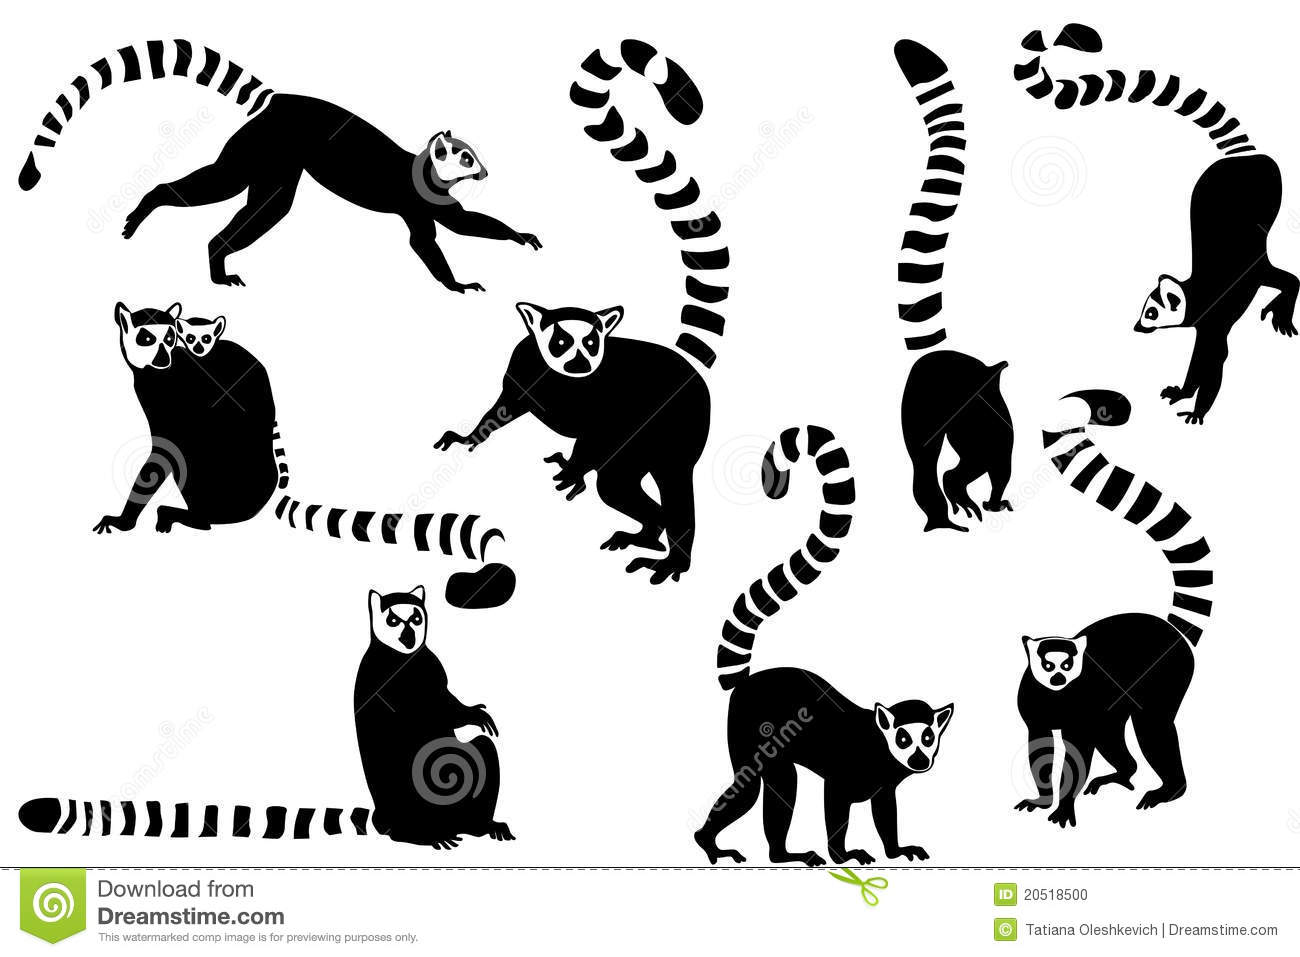 Black and white silhouettes of ring-tailed lemurs collage.